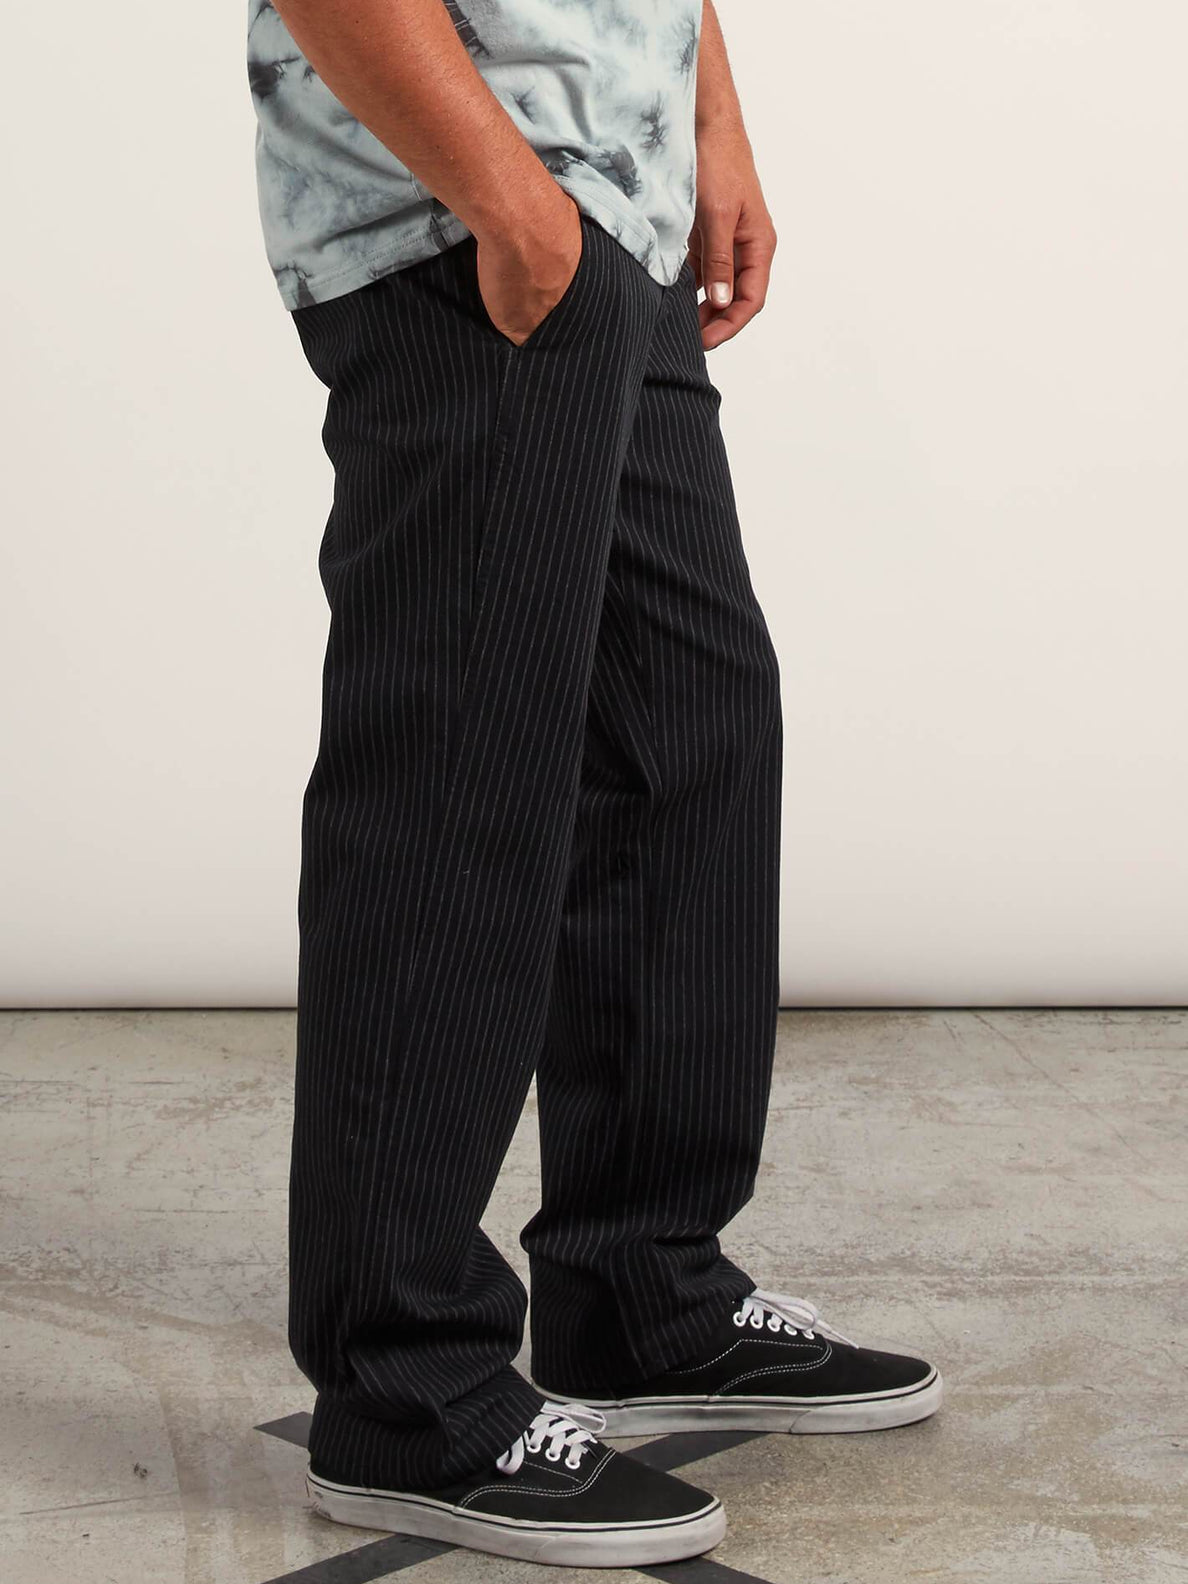 Noa Noise Chino Pants In Black, Alternate View